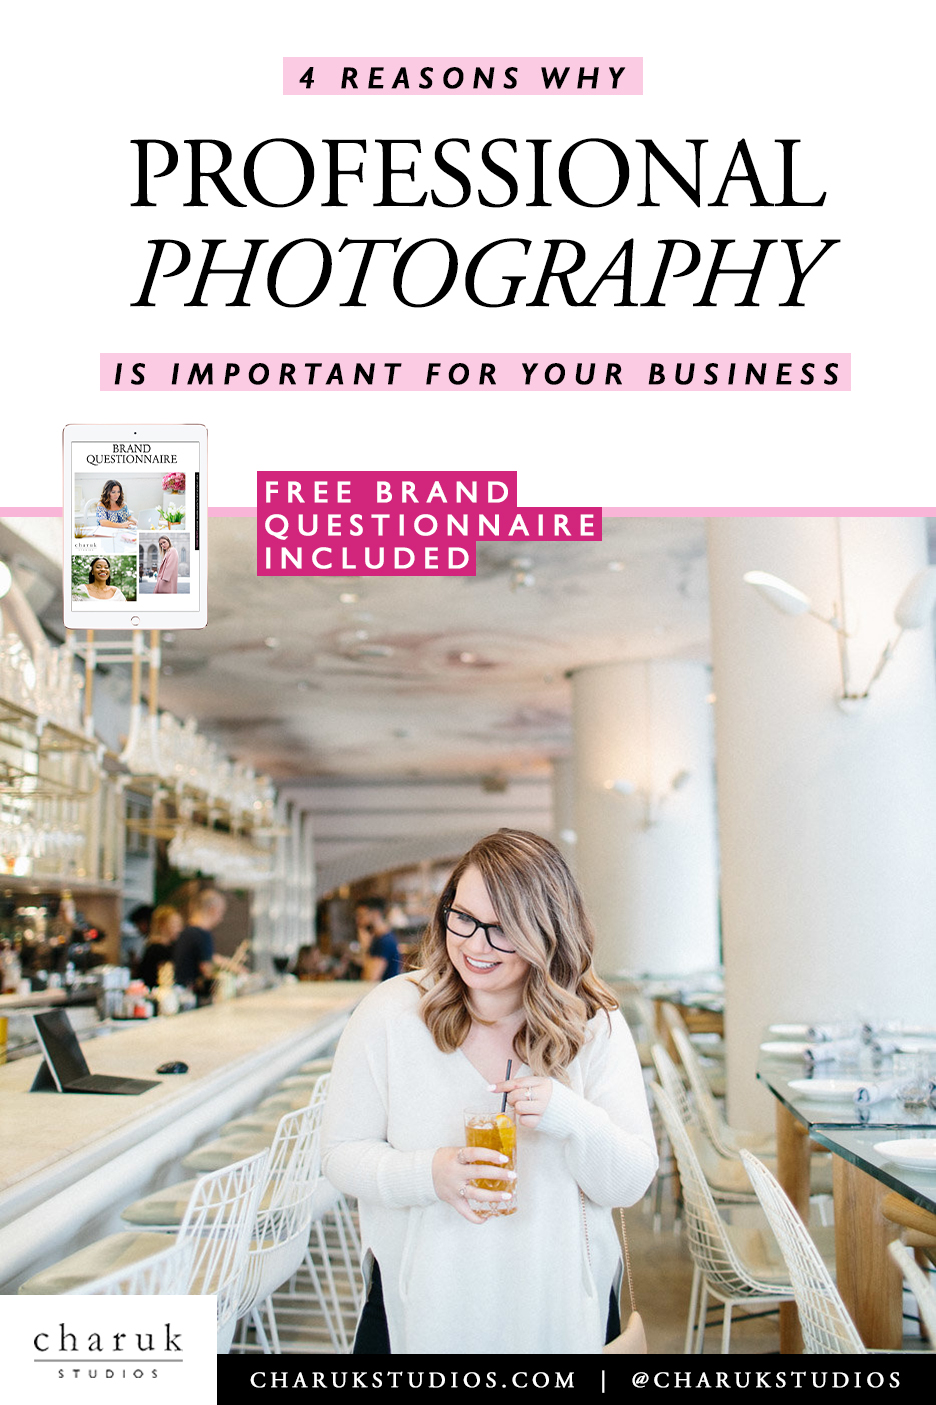 4 Reasons why professional photography is important for your business by Charuk Studios